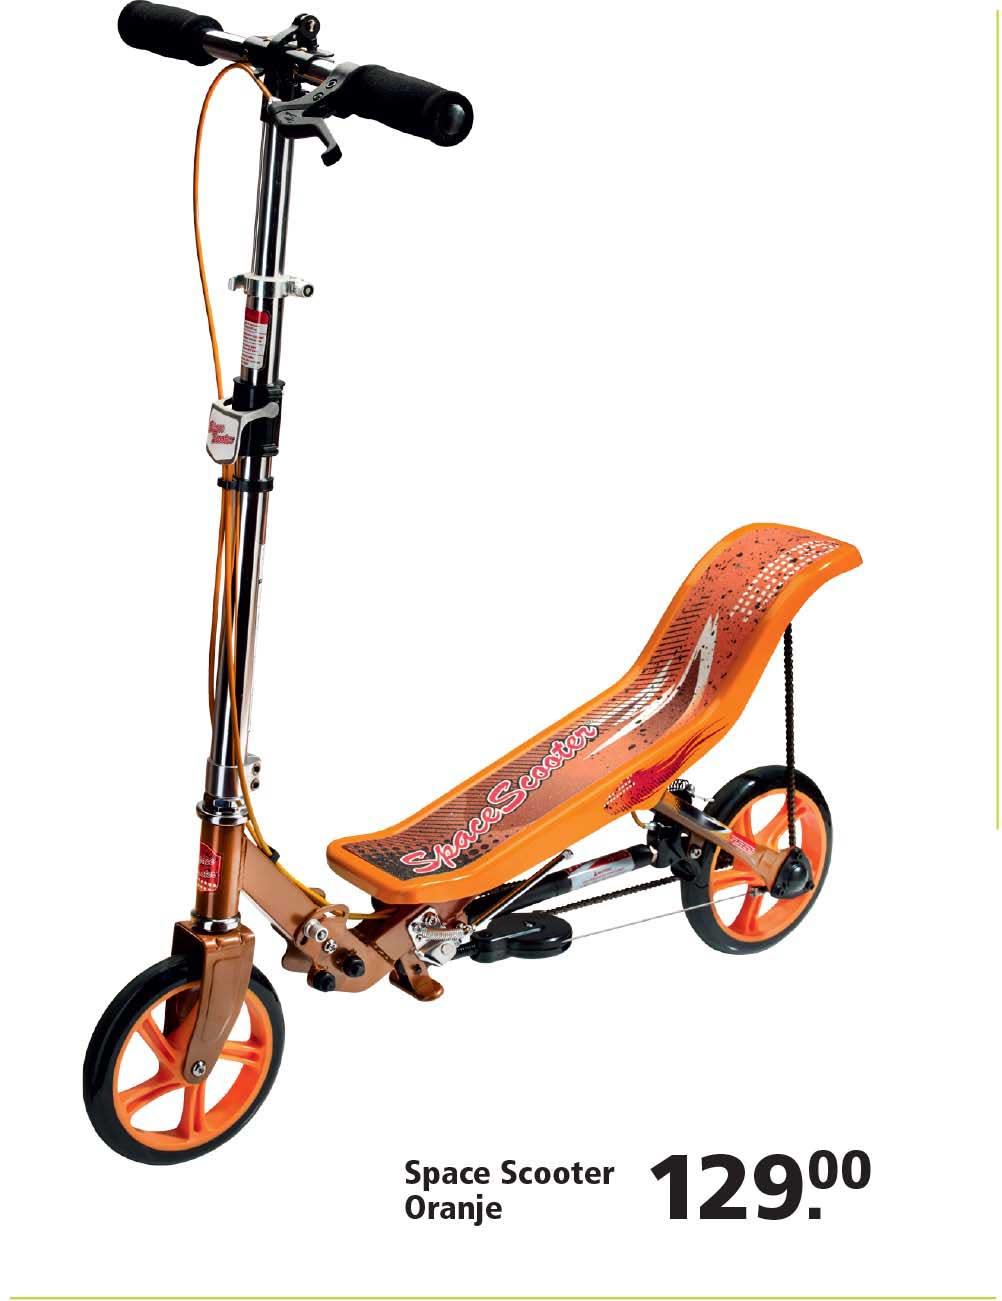 Intertoys Space Scooter Oranje